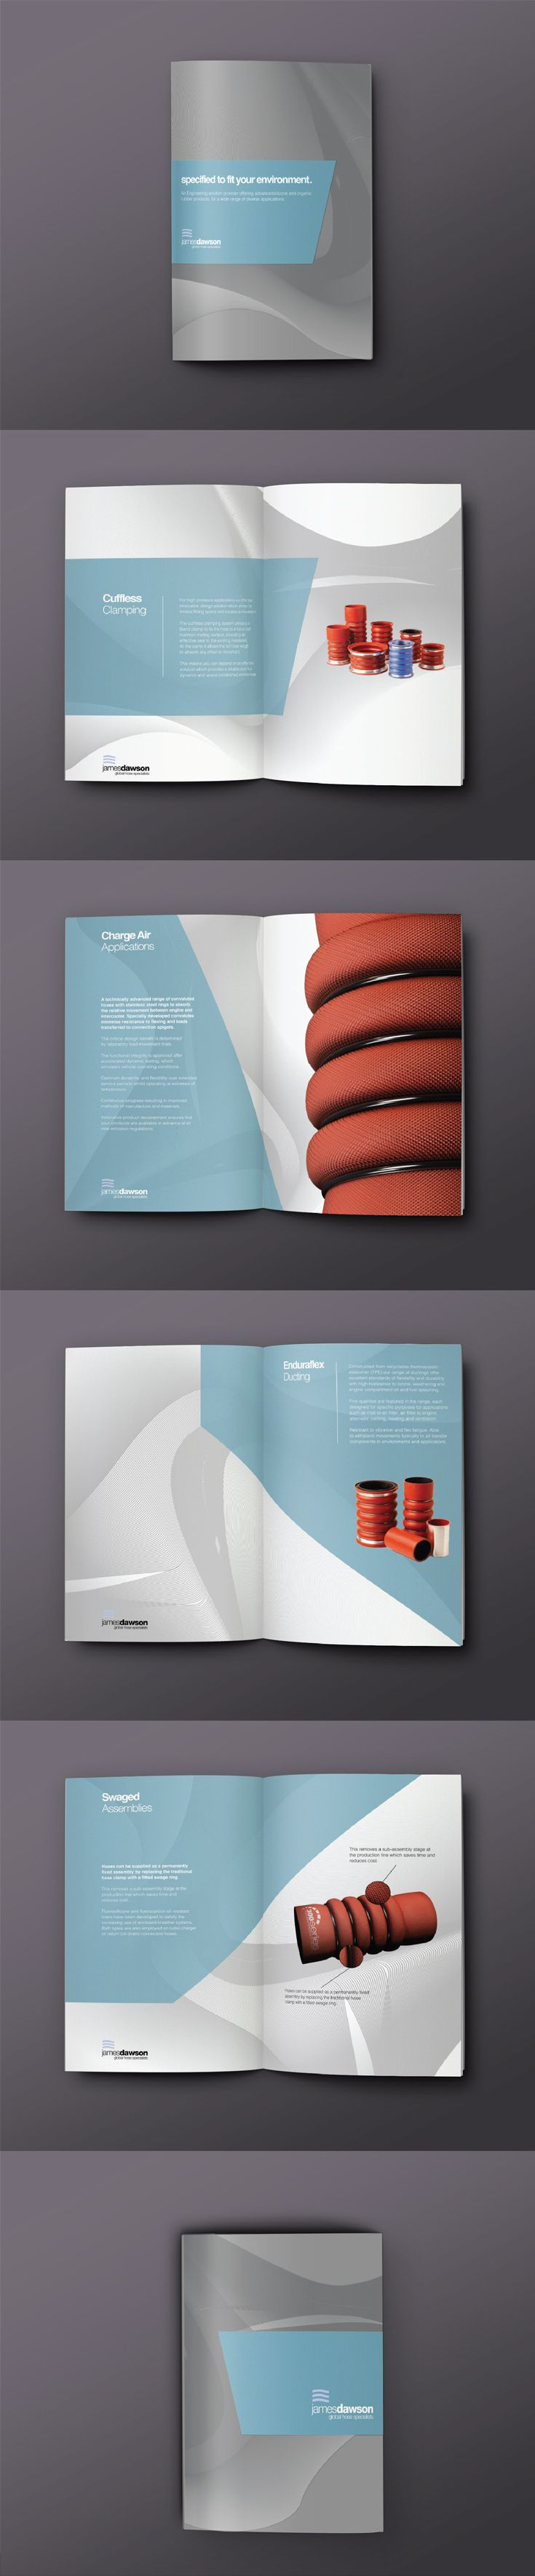 Conceptual brochure design for industruial hose company James Dawson.  www.sebastianandreas.co.uk